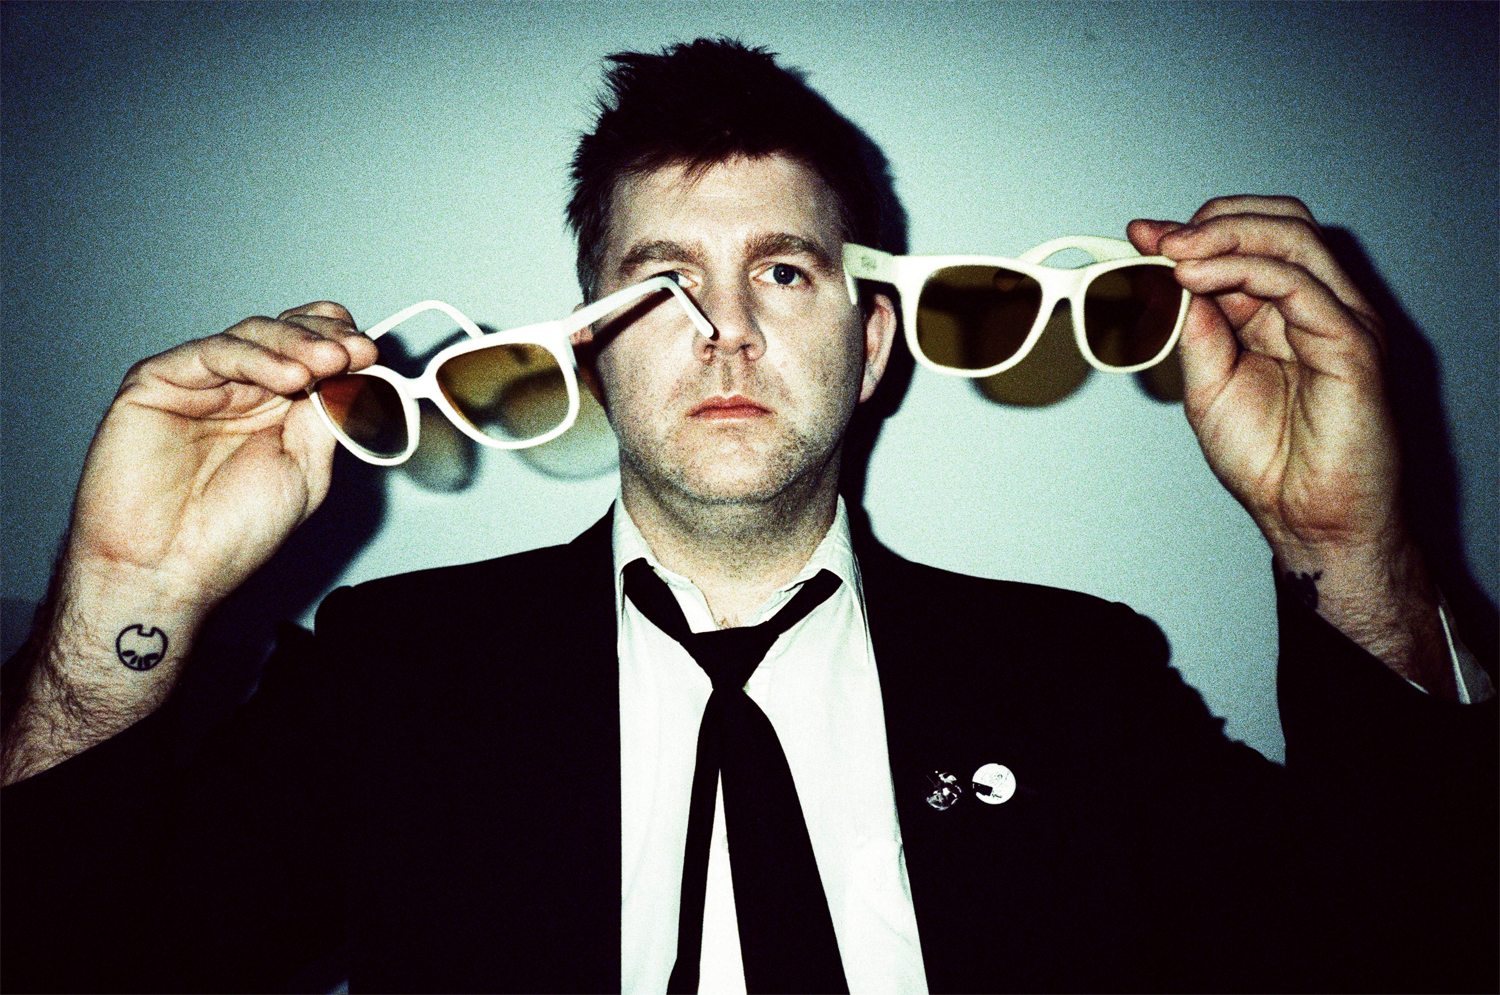 Beach Vibes Festival Announces 2016 Lineup Featuring LCD Soundsystem, Hot Chip and Run The Jewels